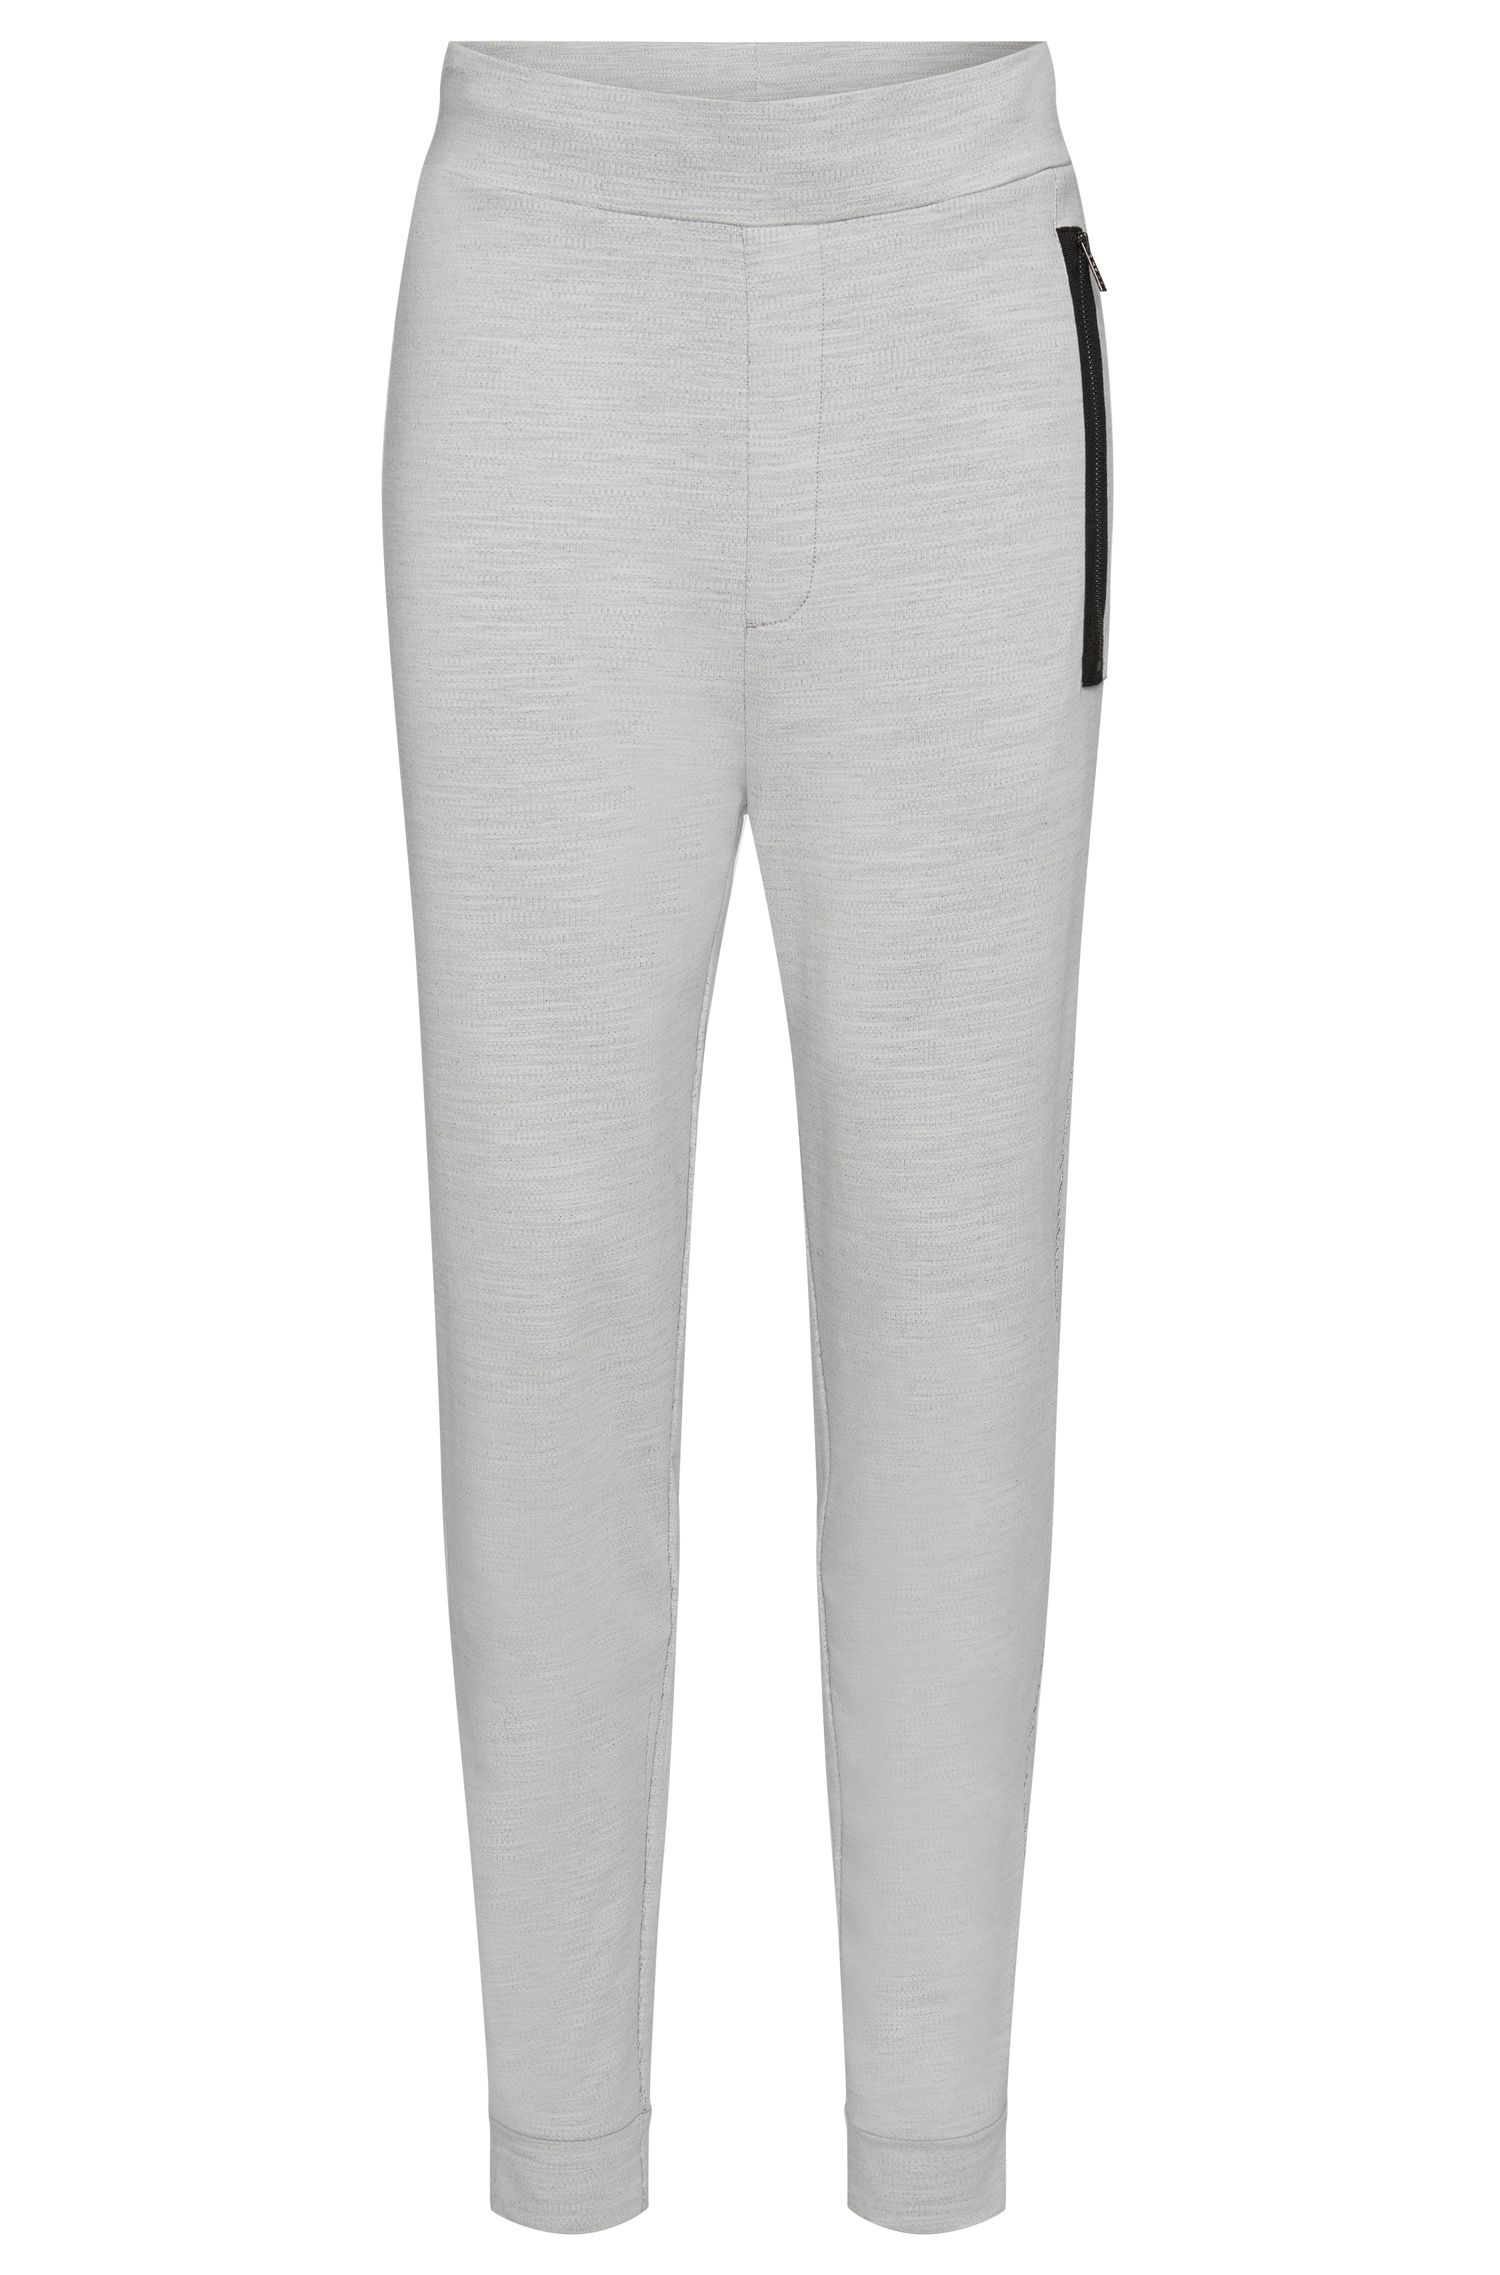 'Dalviso' | Stretch Cotton French Terry Sweatpants